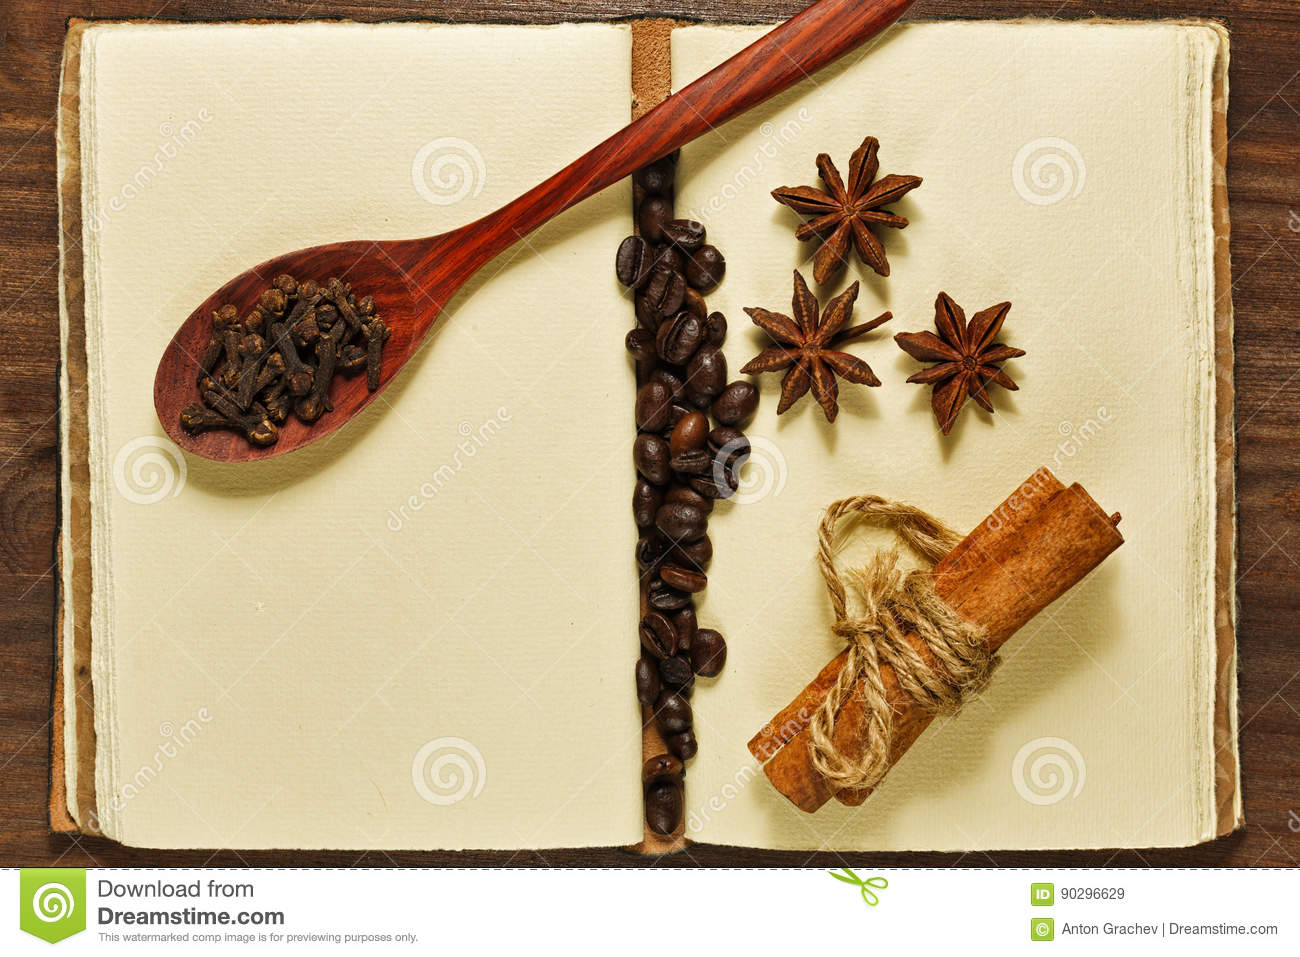 Coffee beans and spices on the vintage notebook